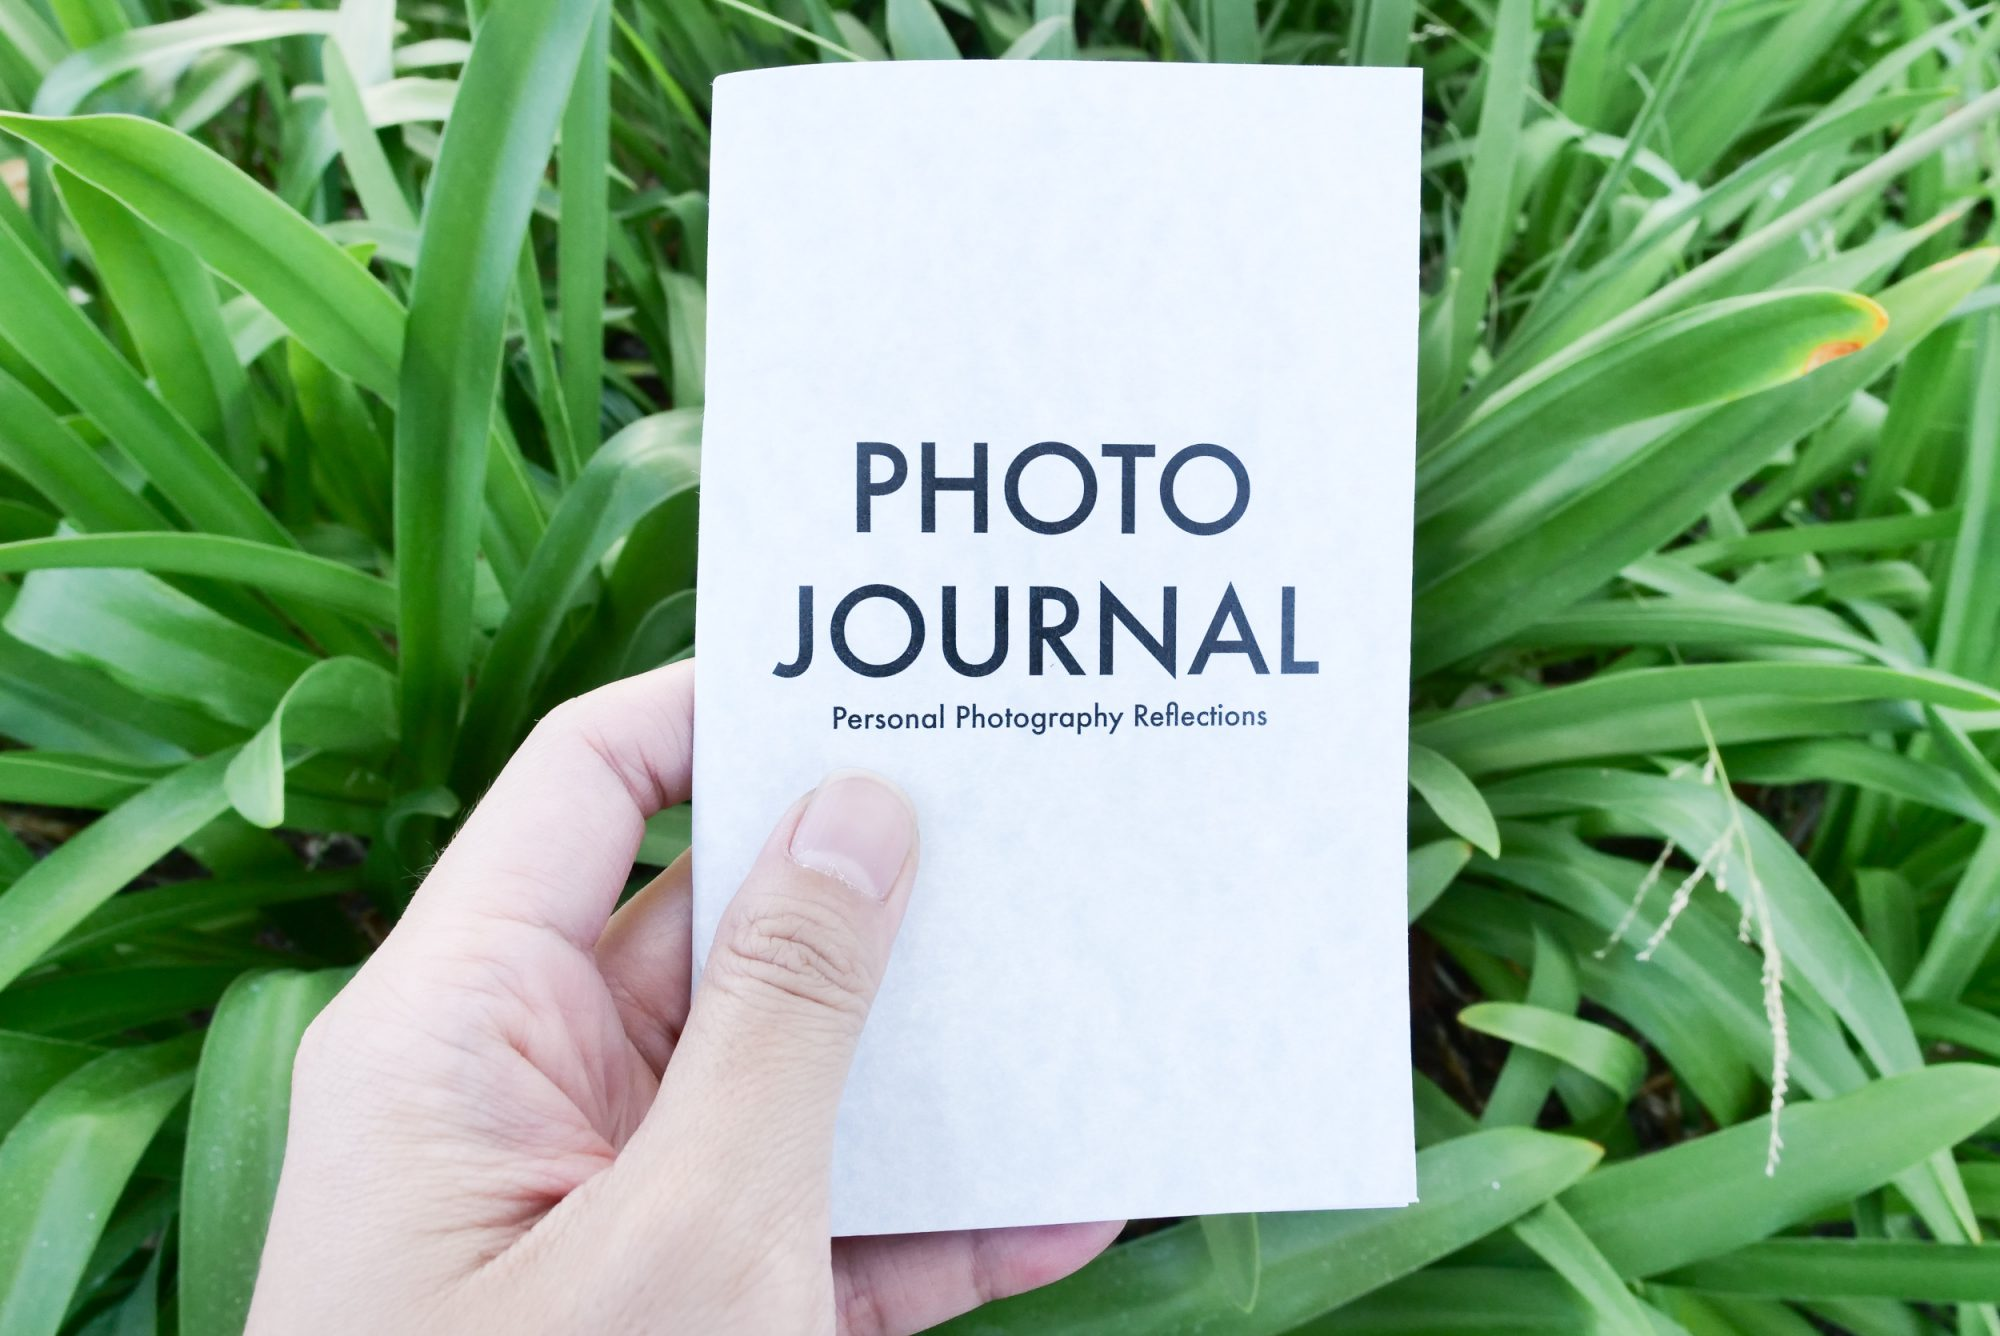 PHOTO JOURNAL: Second edition now in stock!